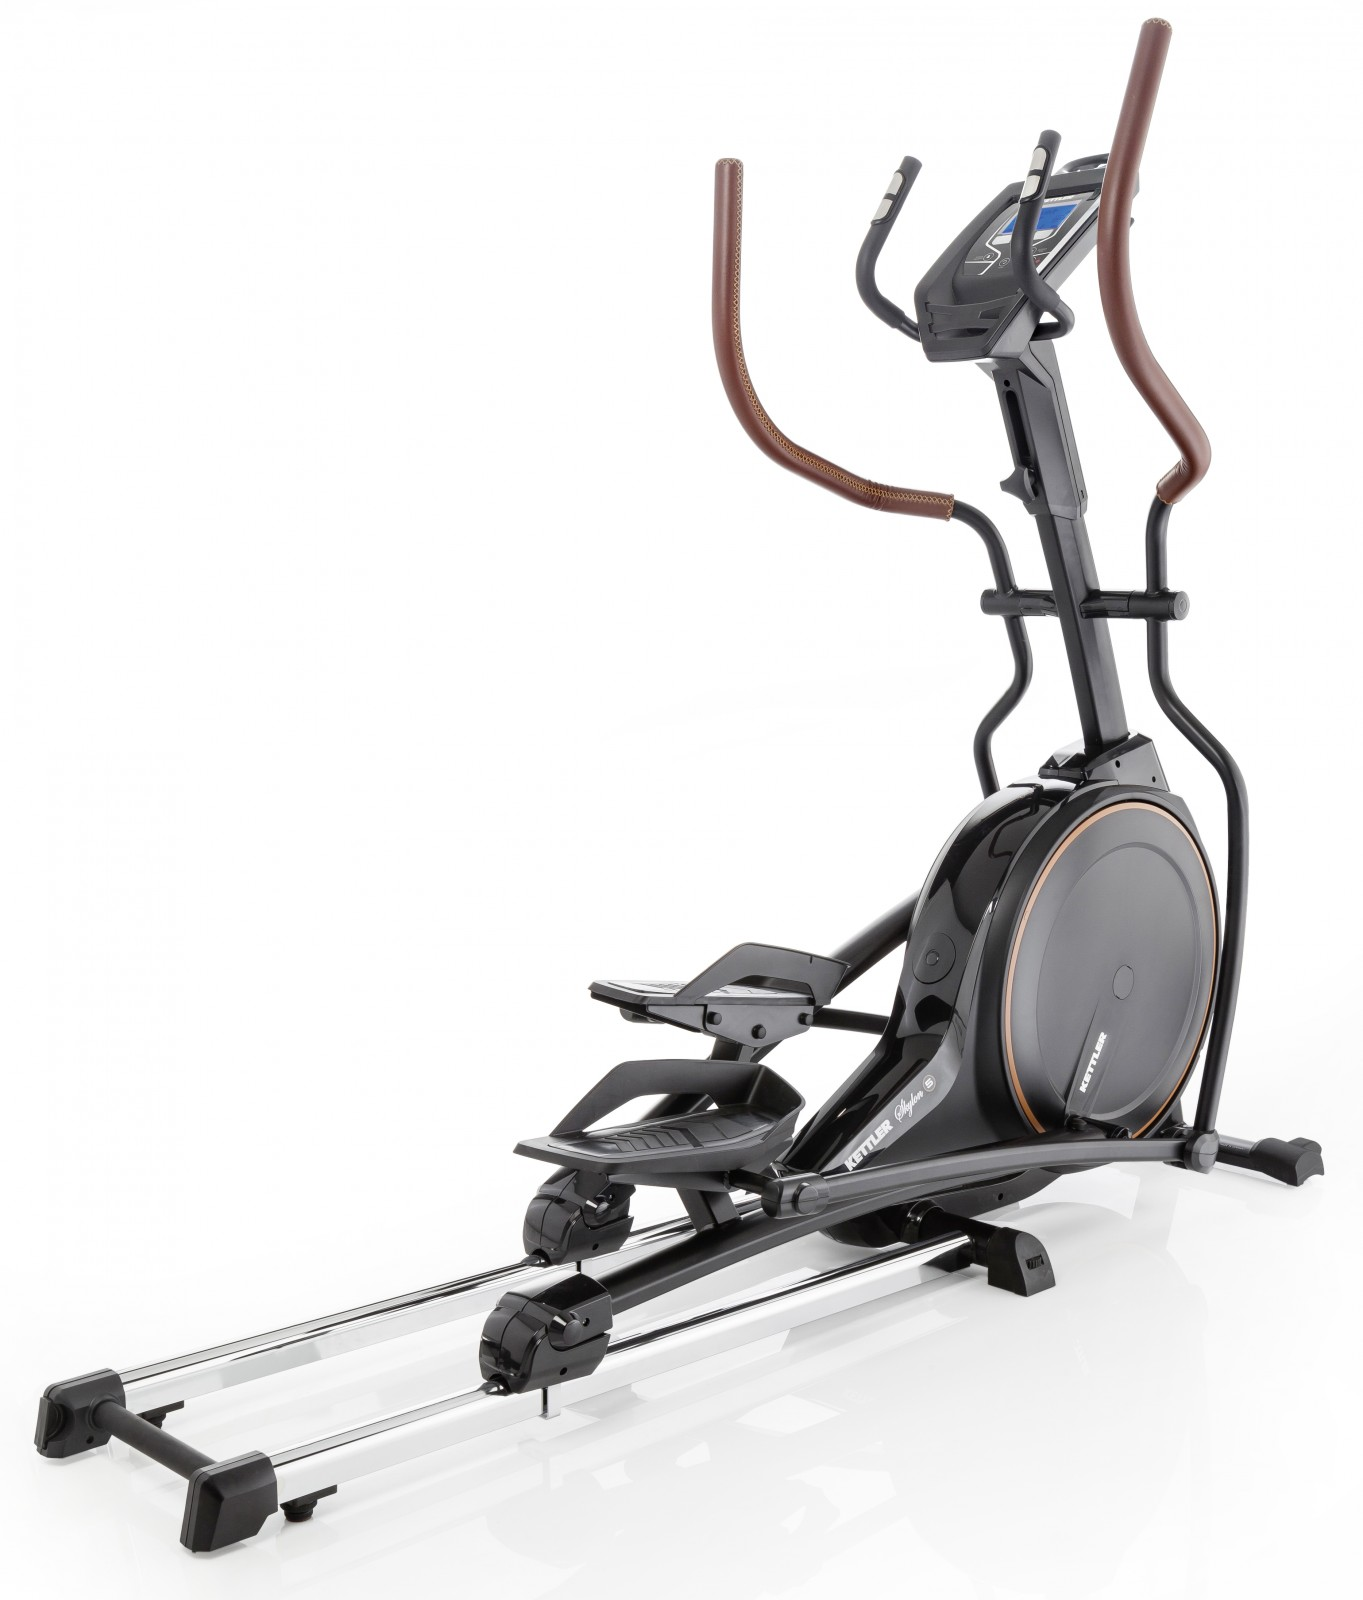 Kettler Fitness Kettler Elliptical Cross Trainer Skylon 5 Comfort Buy